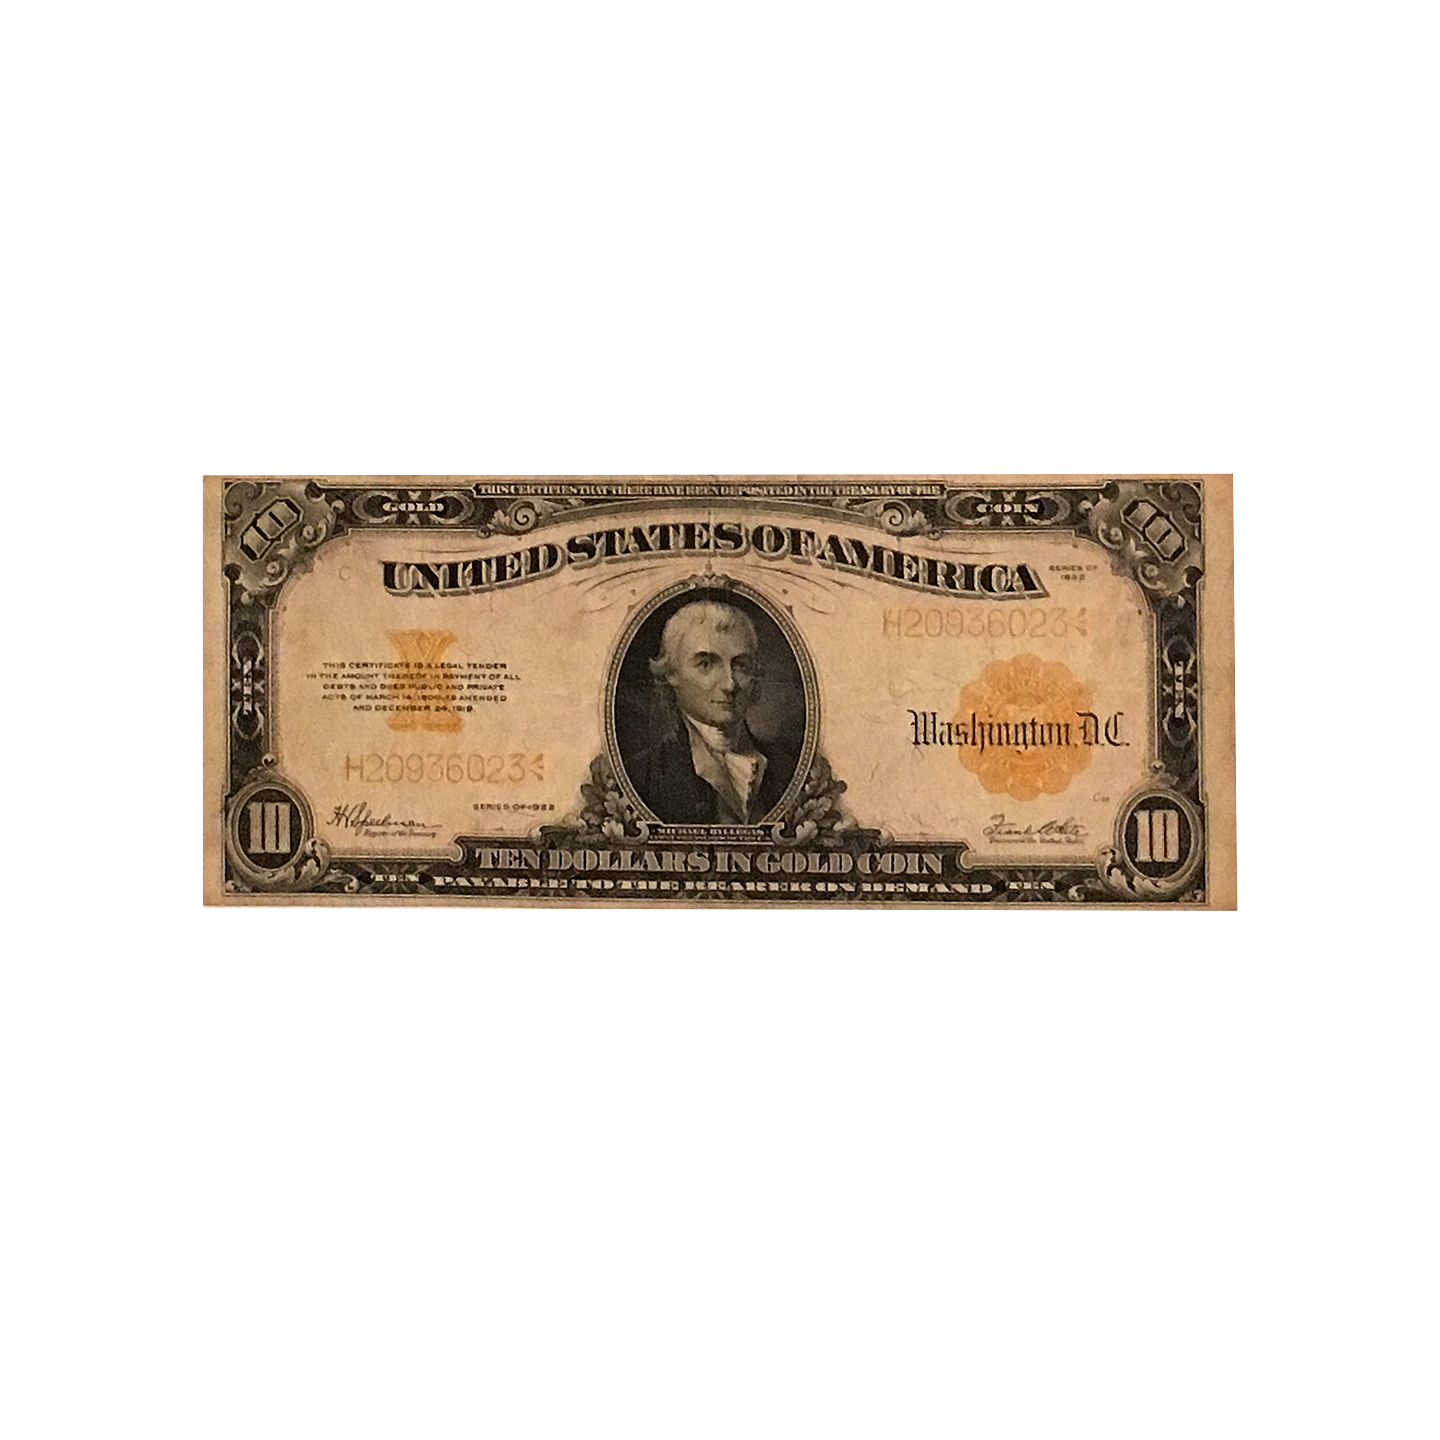 From here to antiquity united states of america 10 gold united states of america 10 gold certificate 1922 xflitez Choice Image